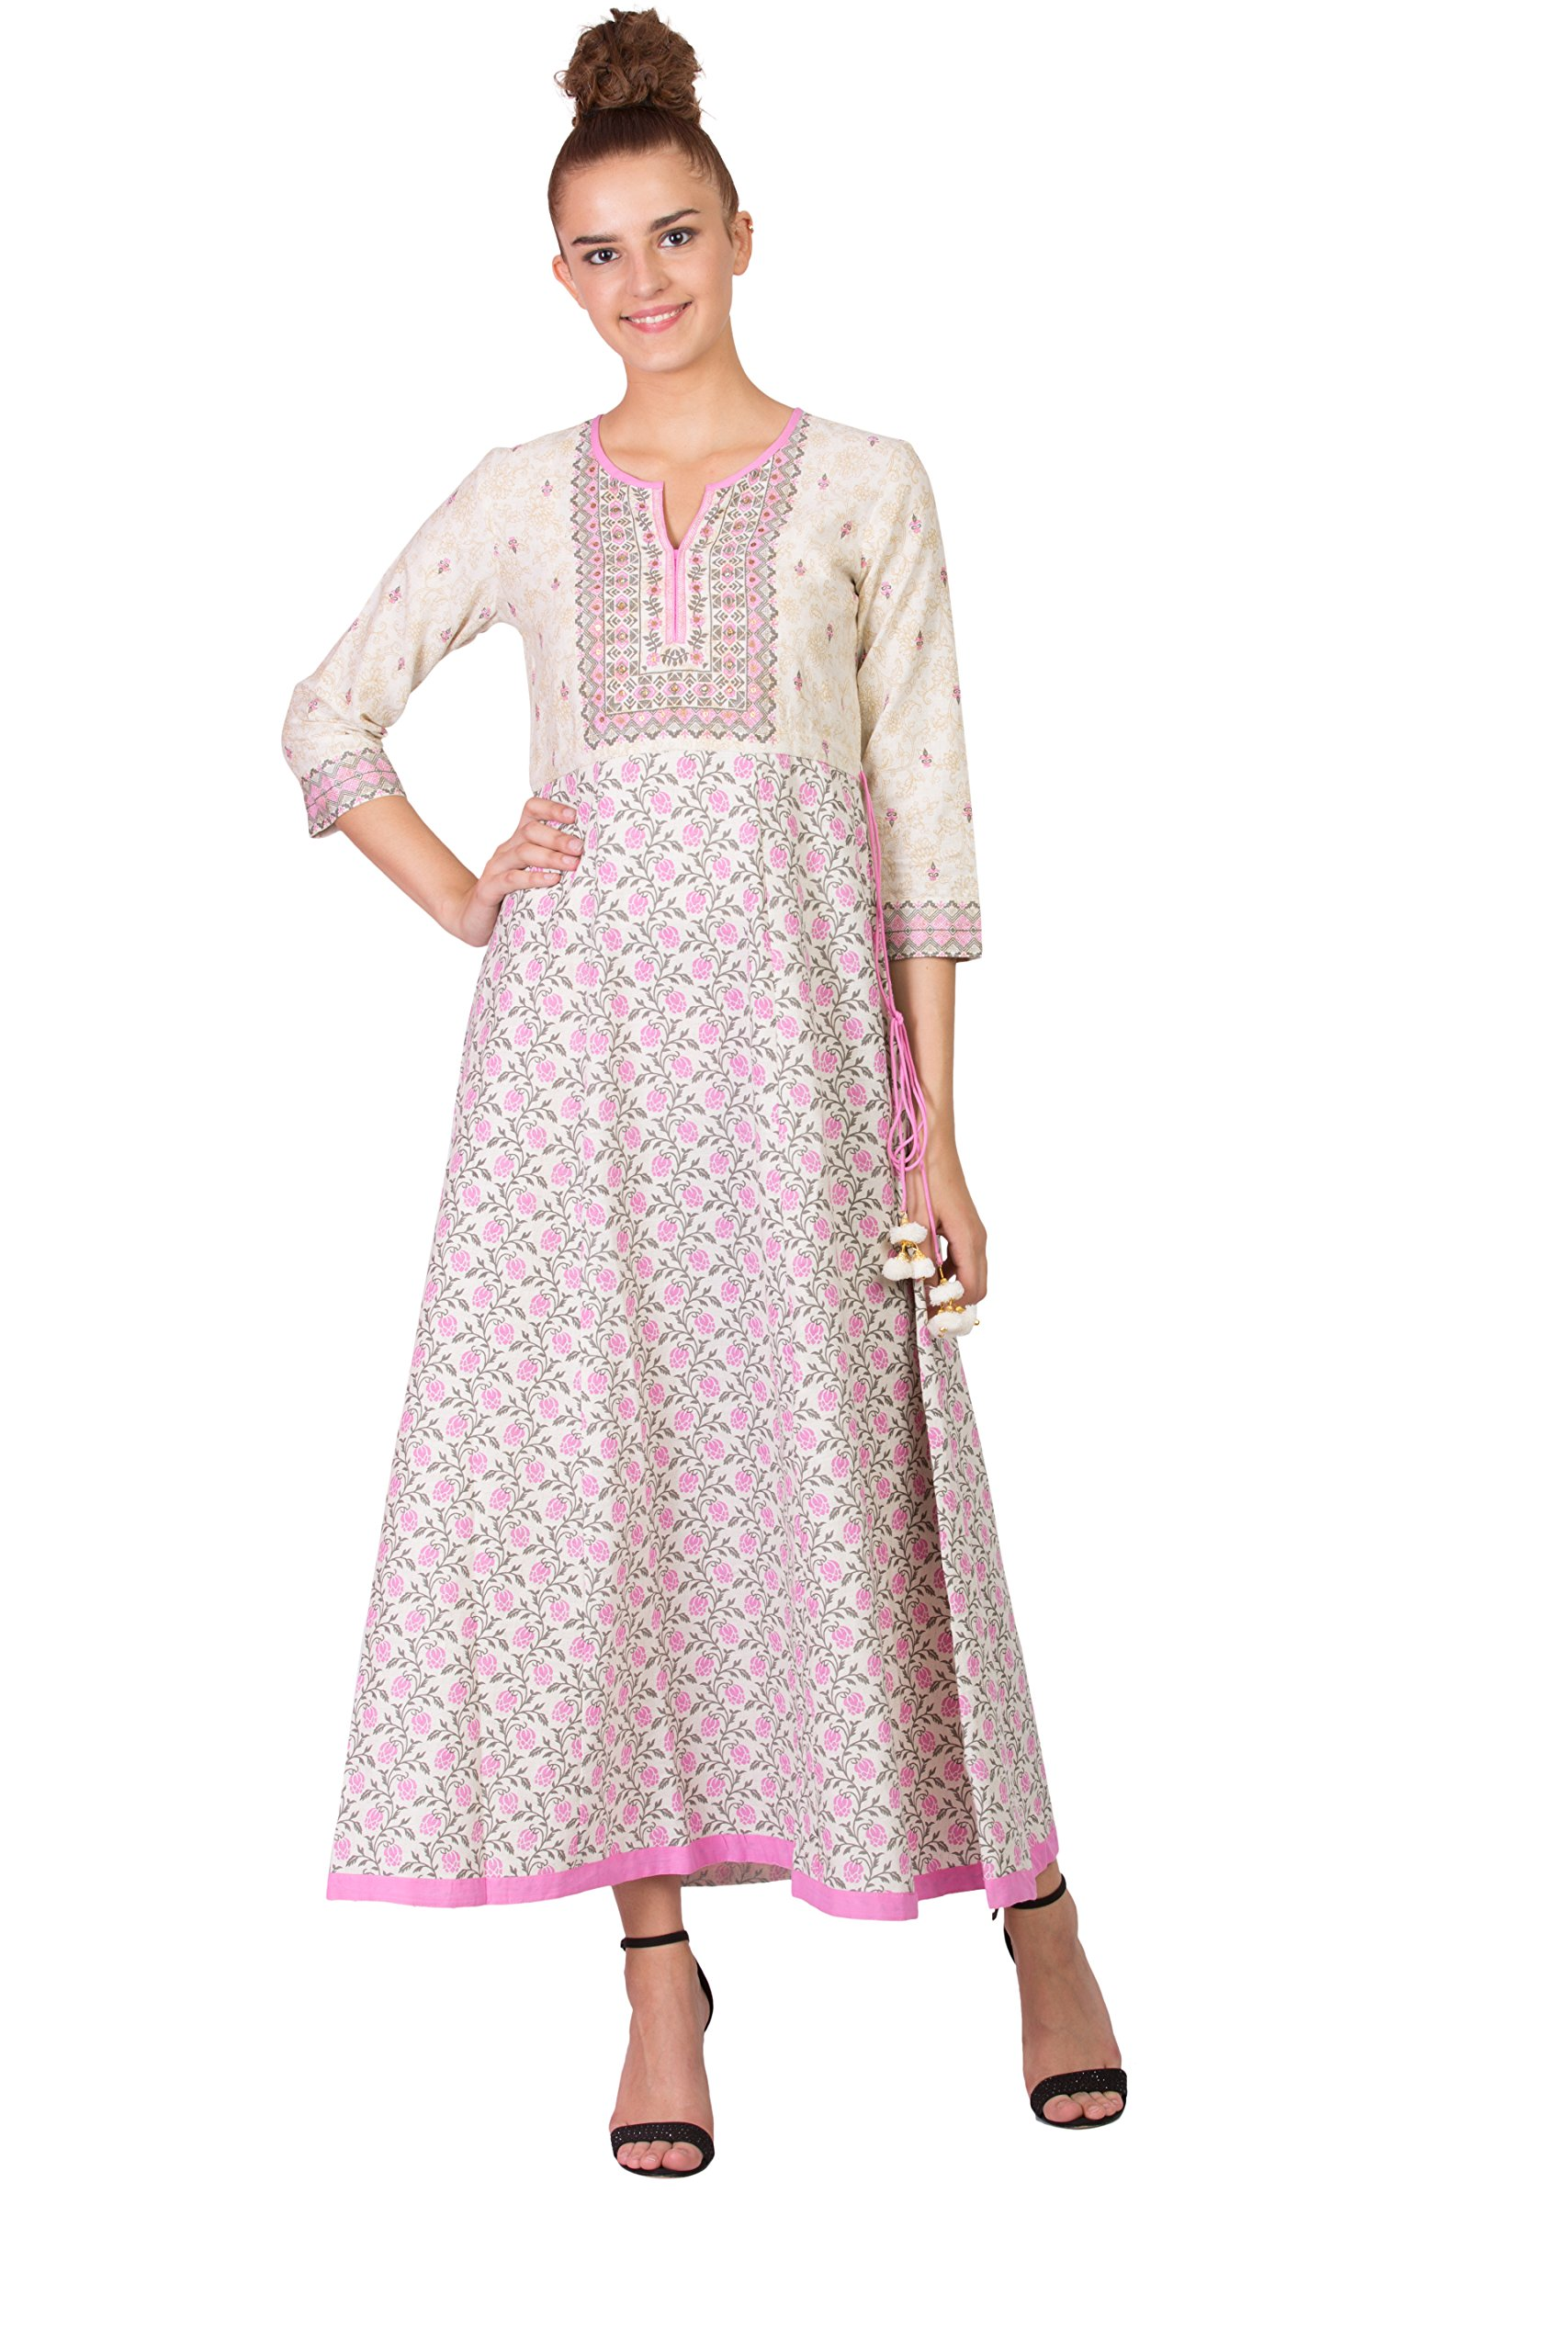 SABHYATA Women Kurta Designer Ethnic Long Dress Casual Tunic Kurti for Women Ladies Partywear Material 100% Pure Cotton Neck Type Round Neck X-Large Beige/Pink